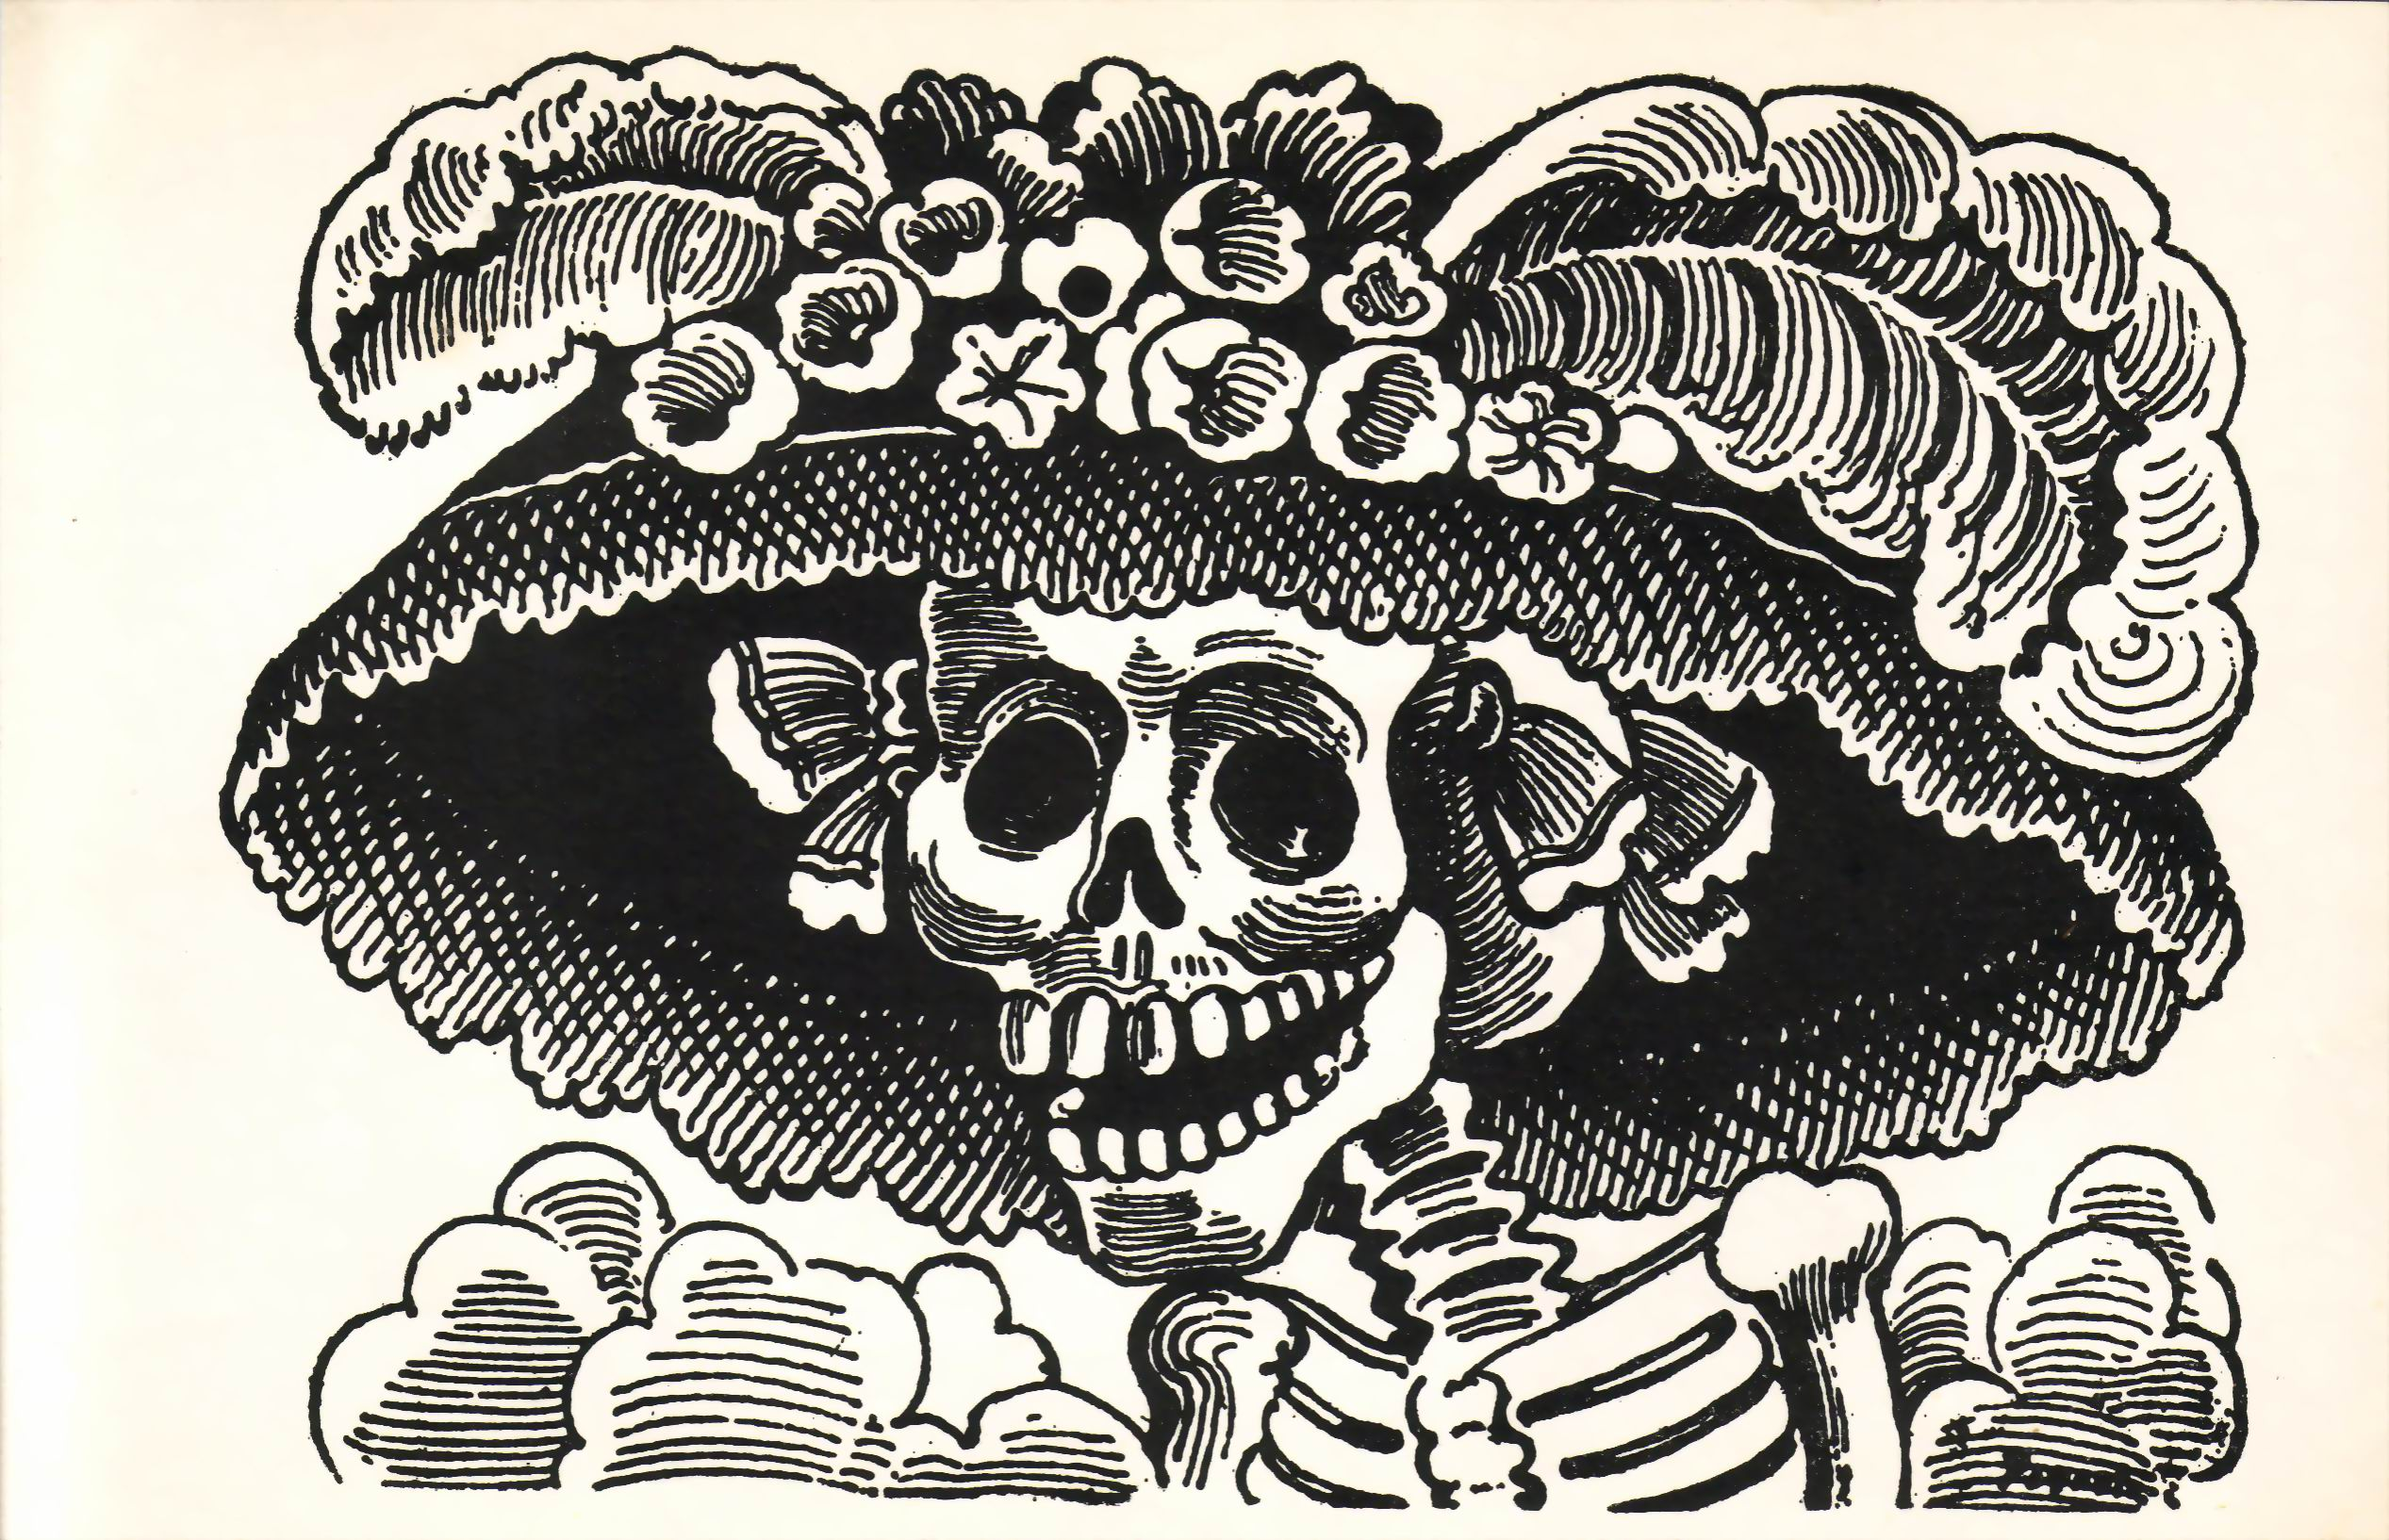 José Guadalupe Posada, the Illustrator Who Made Catrinas an Iconic Symbol of Día de Muertos